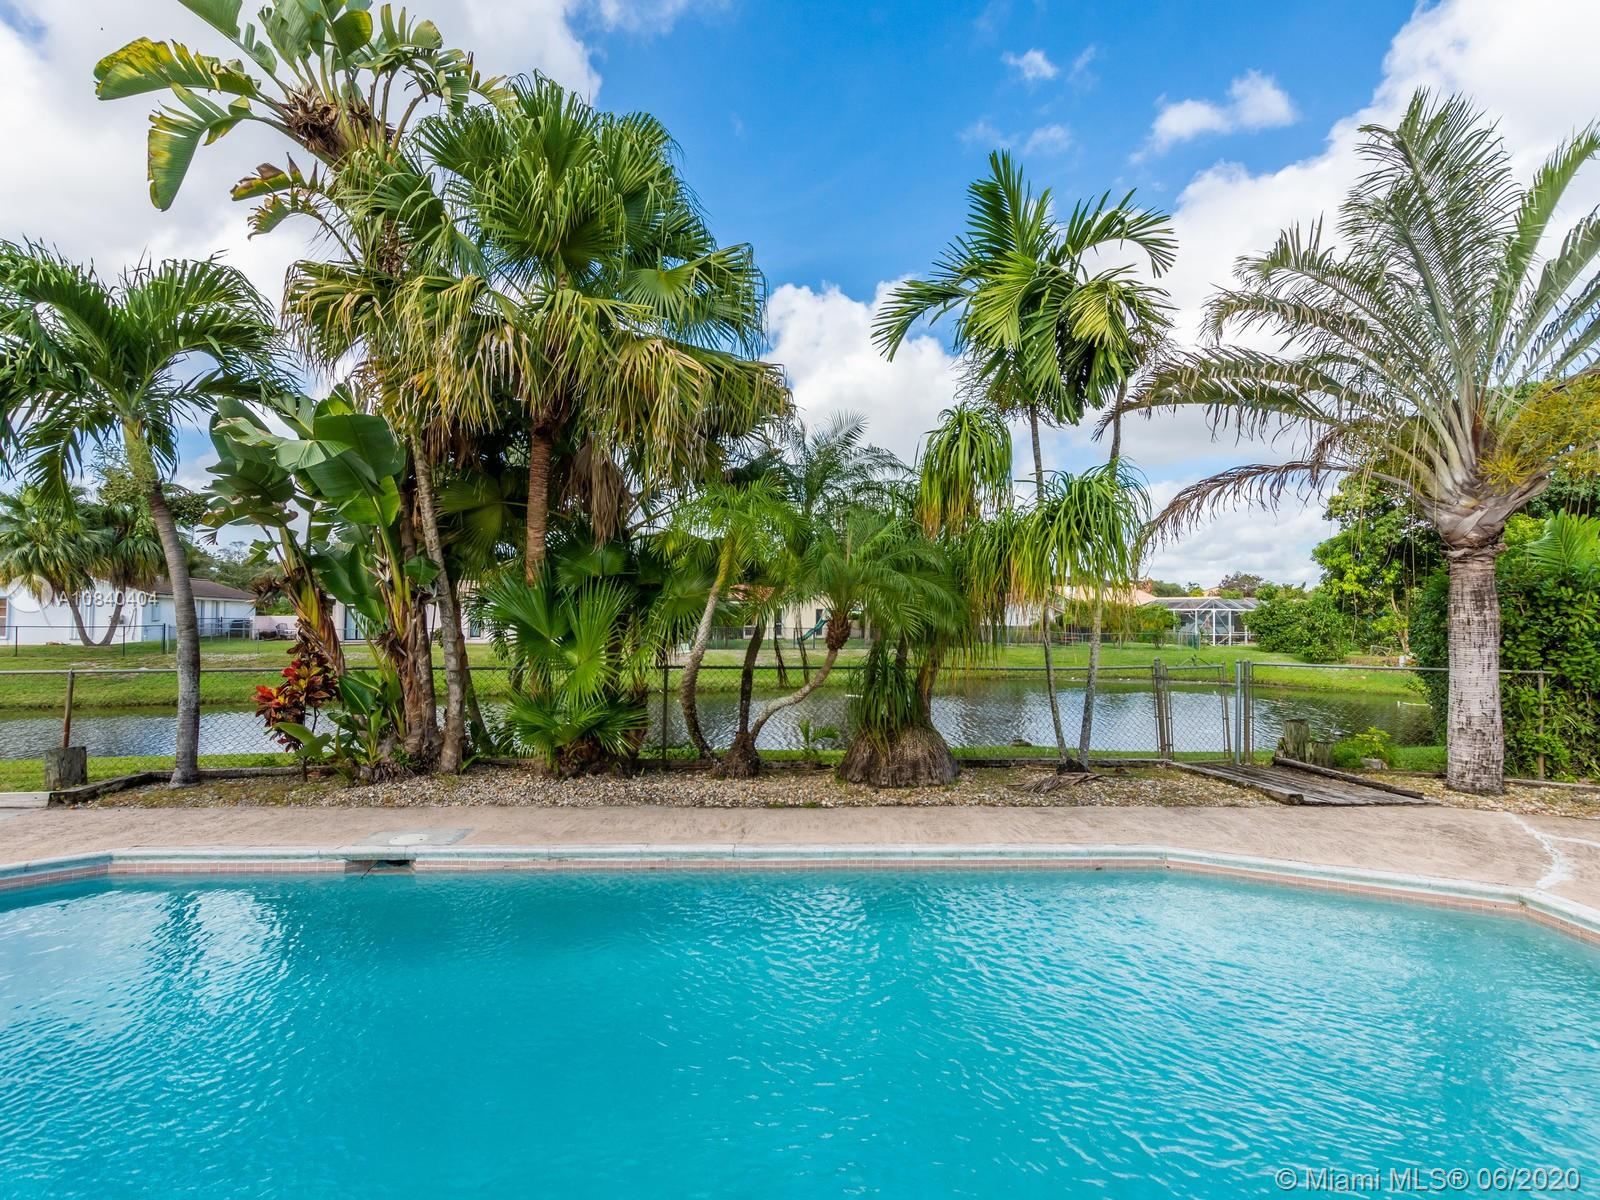 """BEAUTIFUL LOCATION - WATERFRONT HOME IN CUL DE SAC, 3/2 WITH POOL IN RAMBLEWOOD, PERFECT TO ENTERTAIN!""""NO HOA FEE"""". Enjoy Florida in your own oasis in the backyard, ! Amazing Spacious 3 bedrooms and 2bath home in the heart of family-friendly Coral Springs.Large separate laundry, Enjoy the wide waterfront views from either of enclosed private patio or pool area. screened in porch. Great well-maintained lot, away from busy roads. Huge pool patio area! Large private back yard!,Home is located in a great family neighborhood in great schools district!Best Location !"""